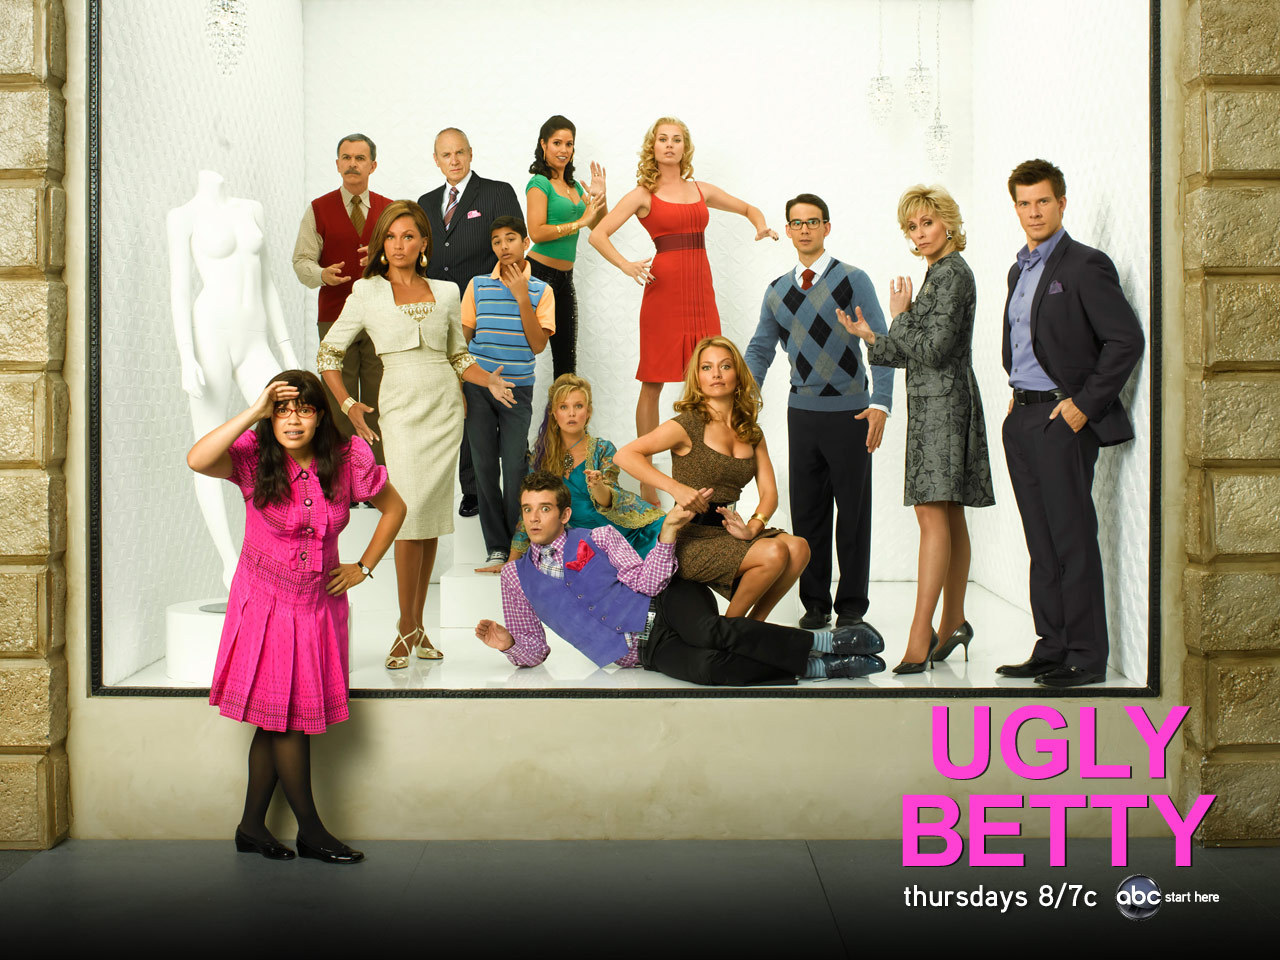 http://images2.fanpop.com/images/photos/6800000/ugly-betty-ugly-betty-6828075-1280-960.jpg